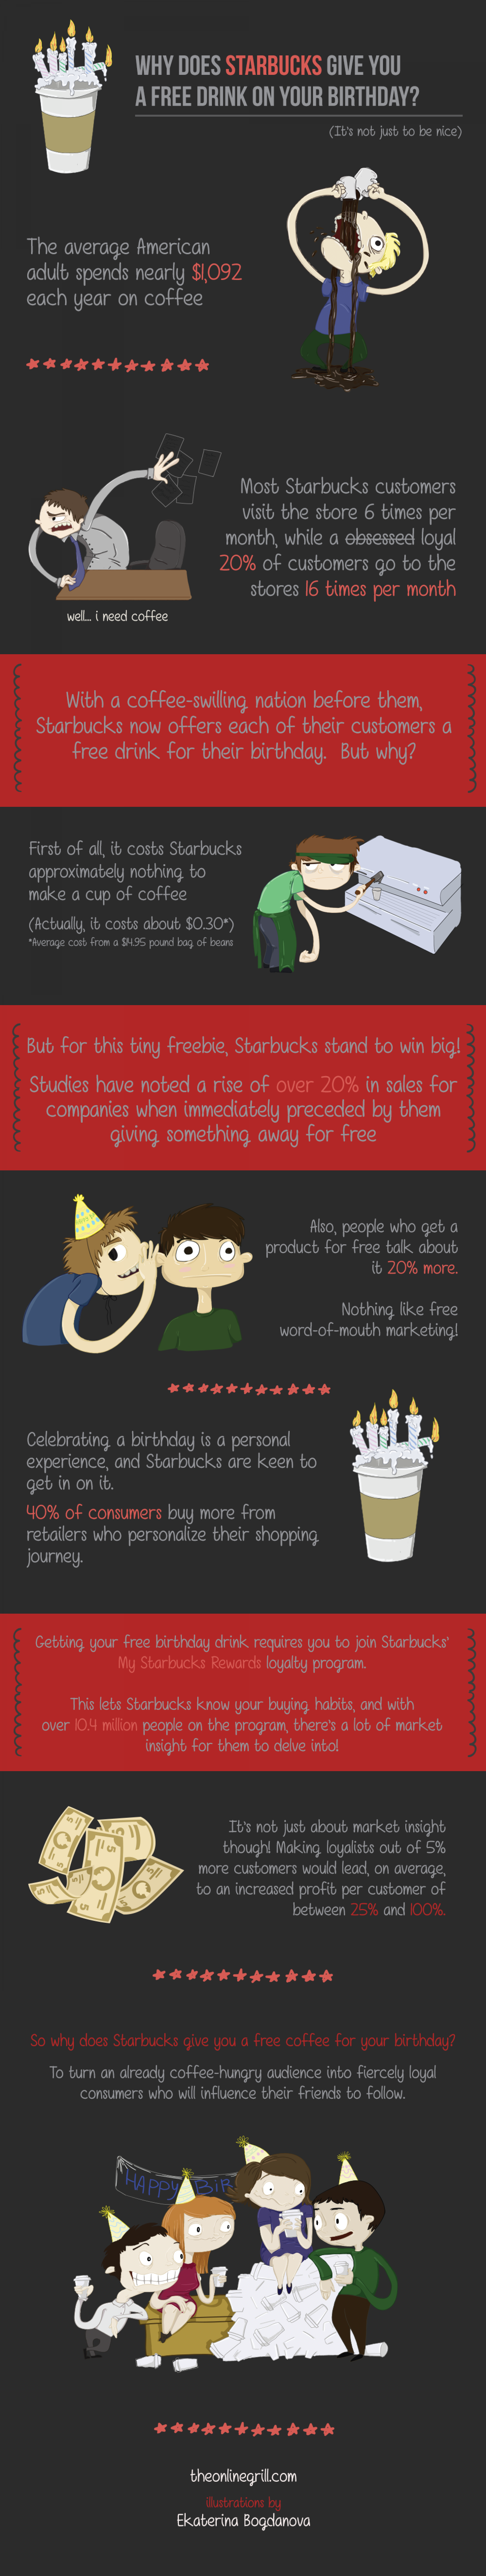 Why does Starbucks give you a free drink on your birthday? Infographic